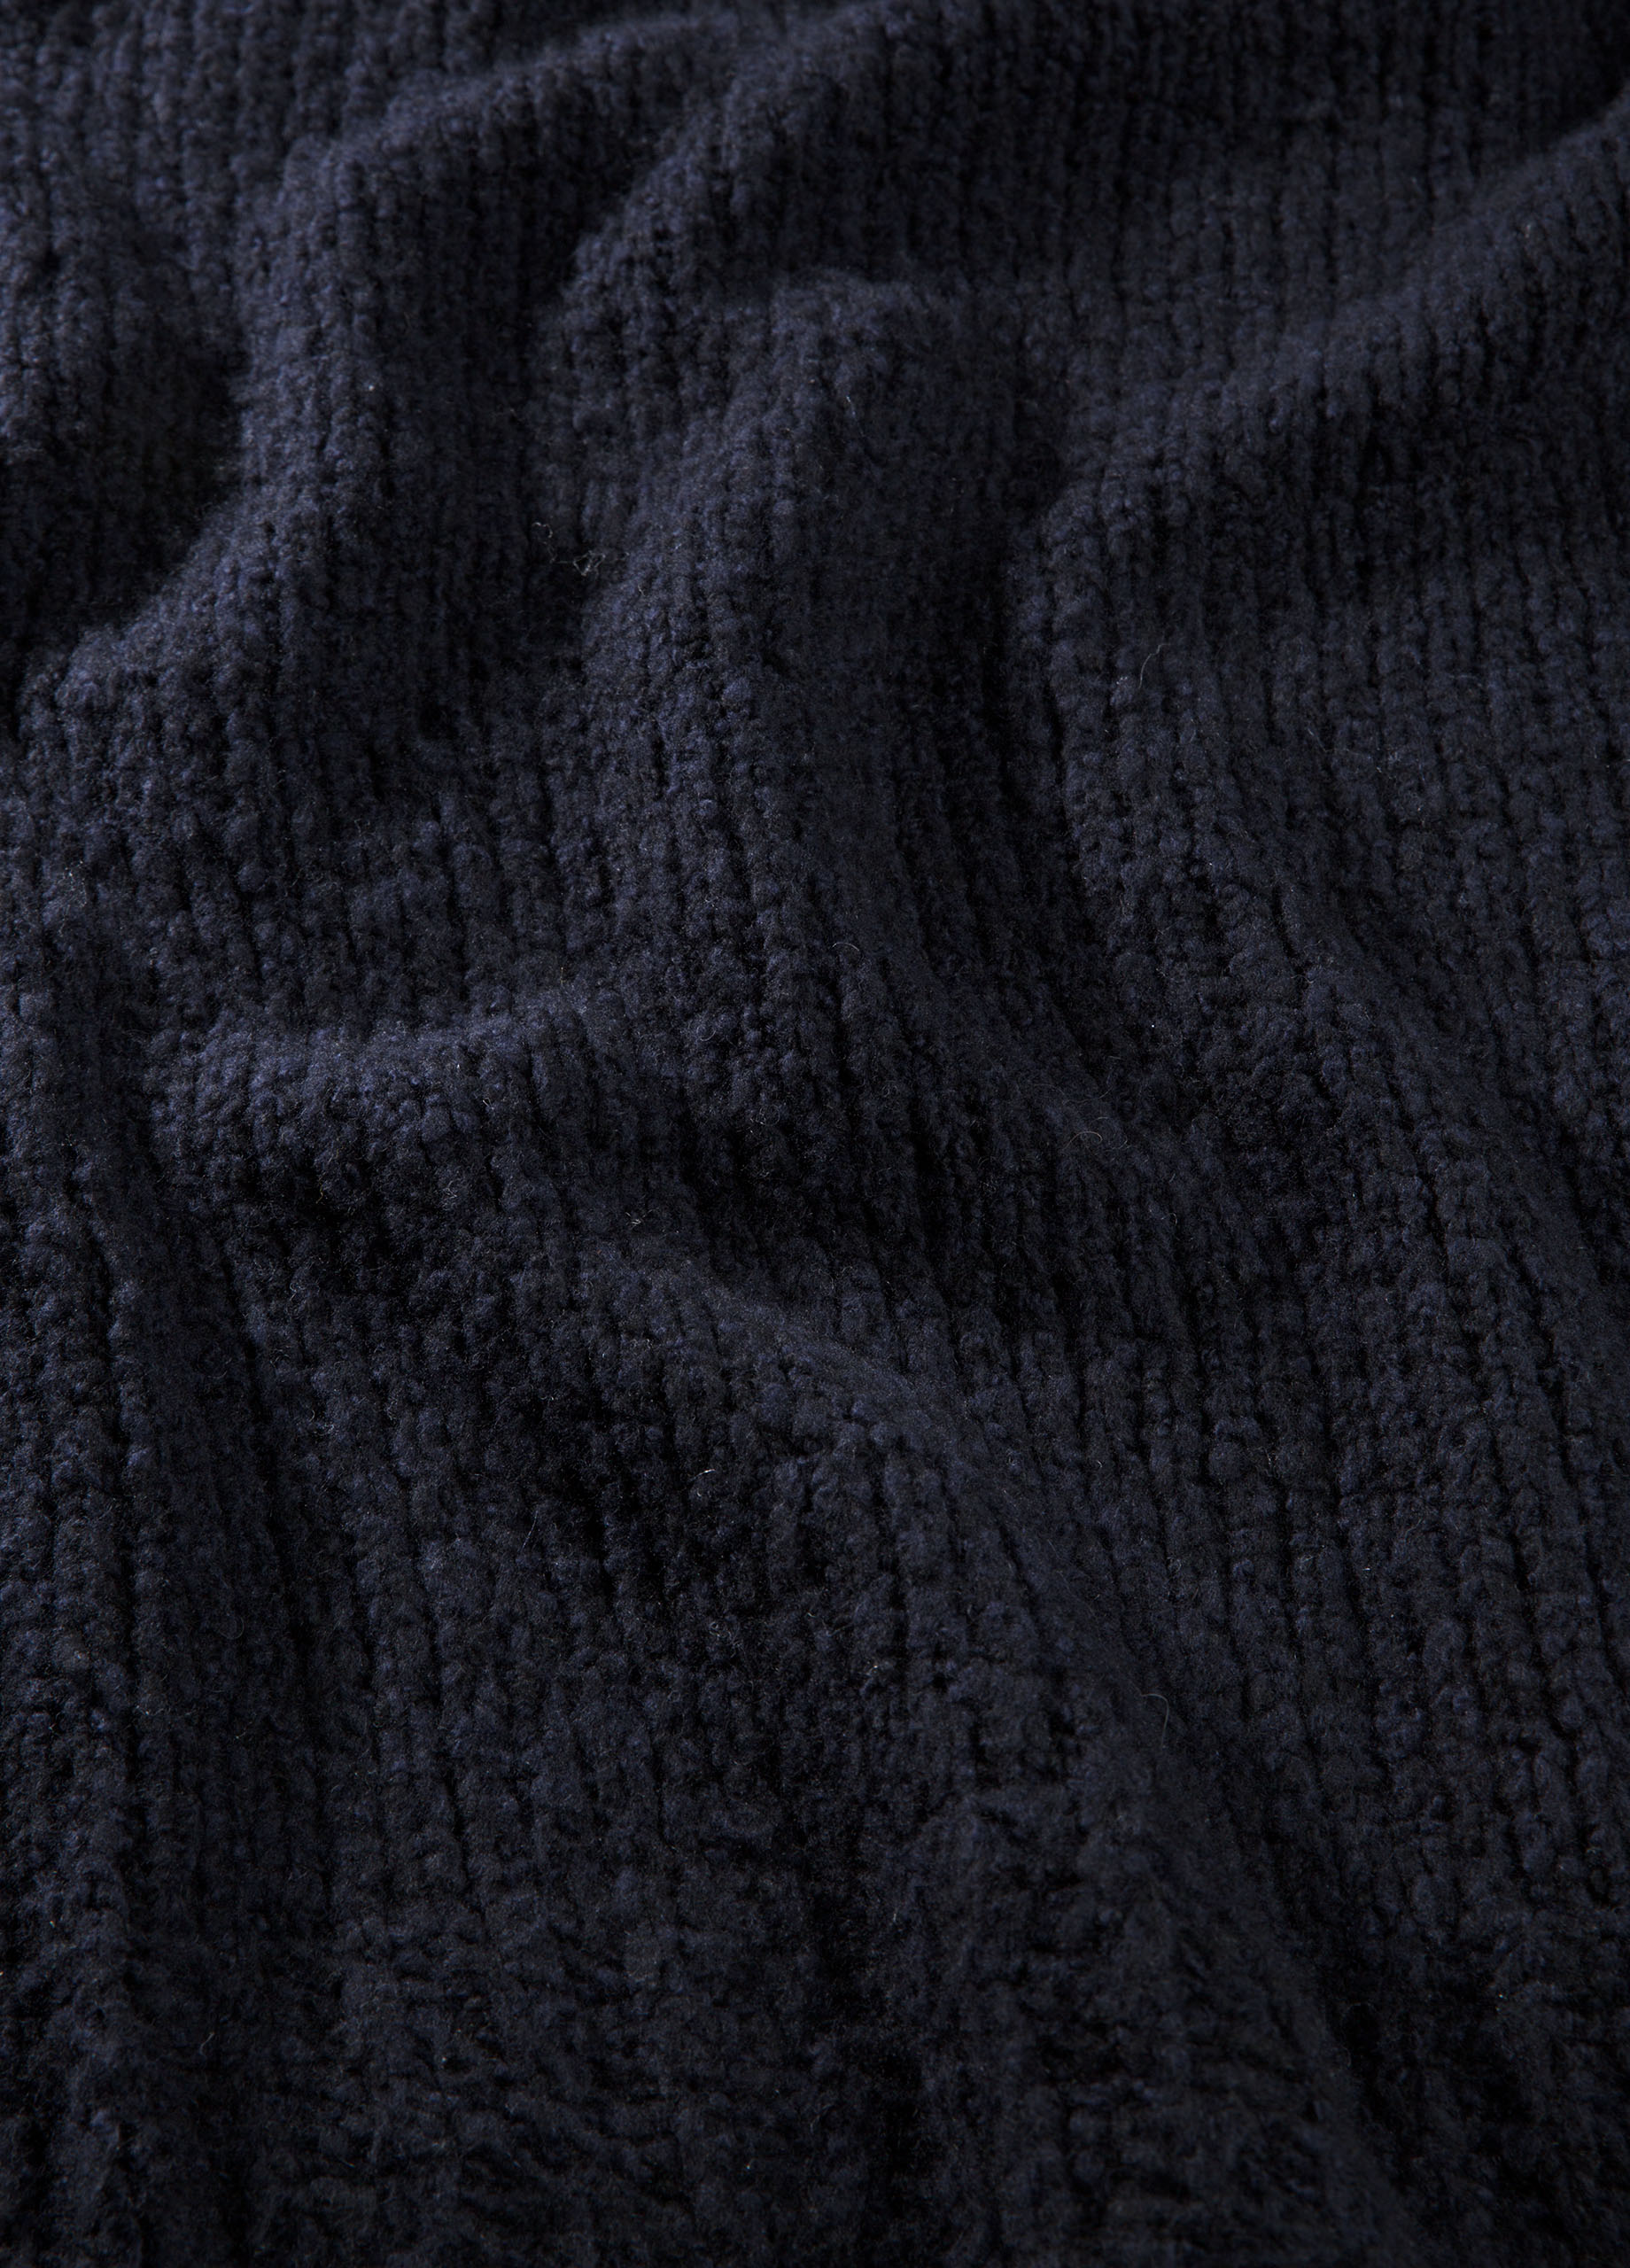 Fringed Ribbed Wool and Cashmere Blanket